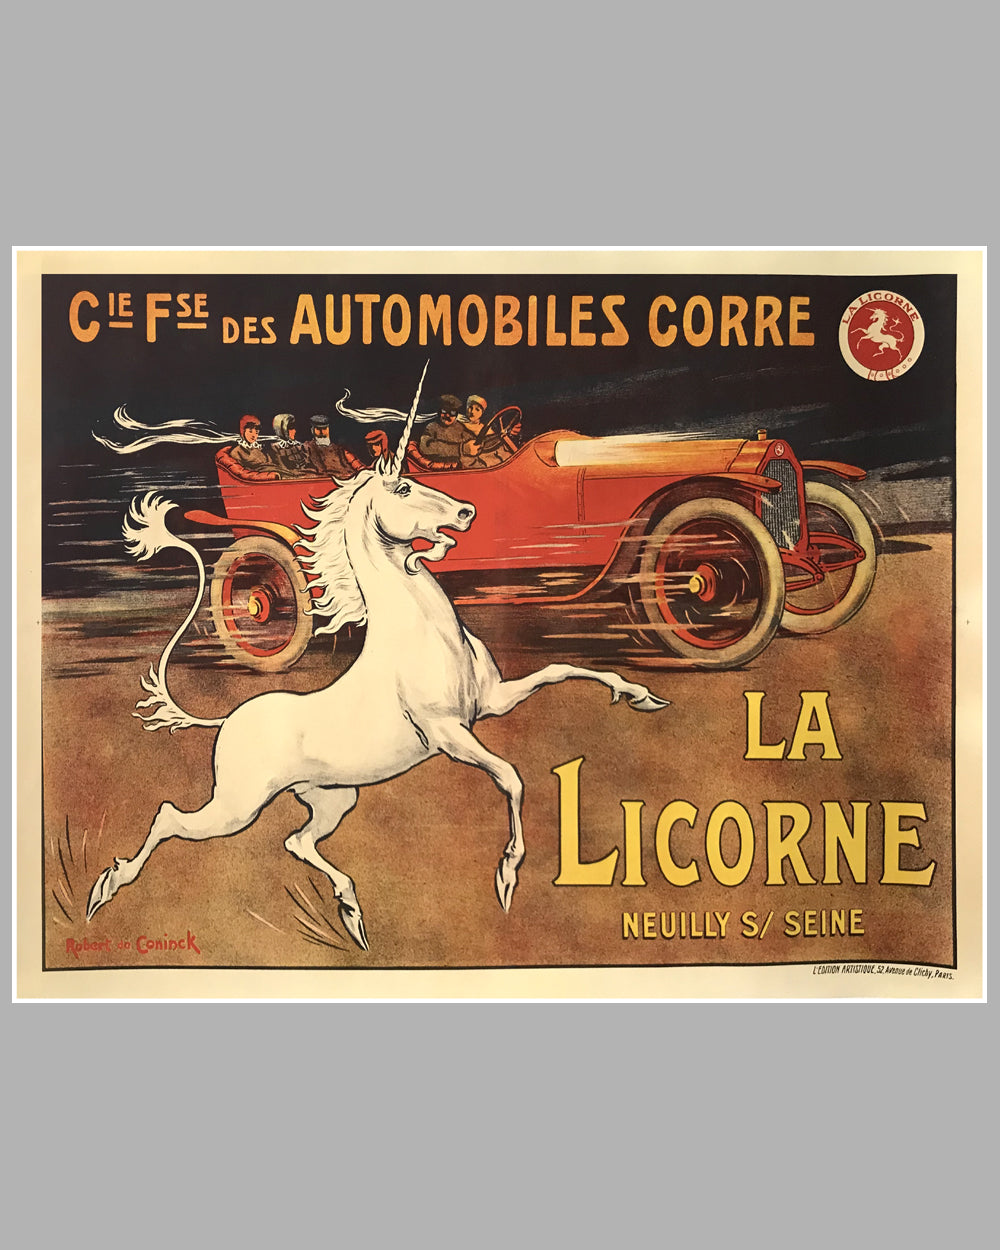 La Licorne large original poster ca. 1918 by Robert de Coninck